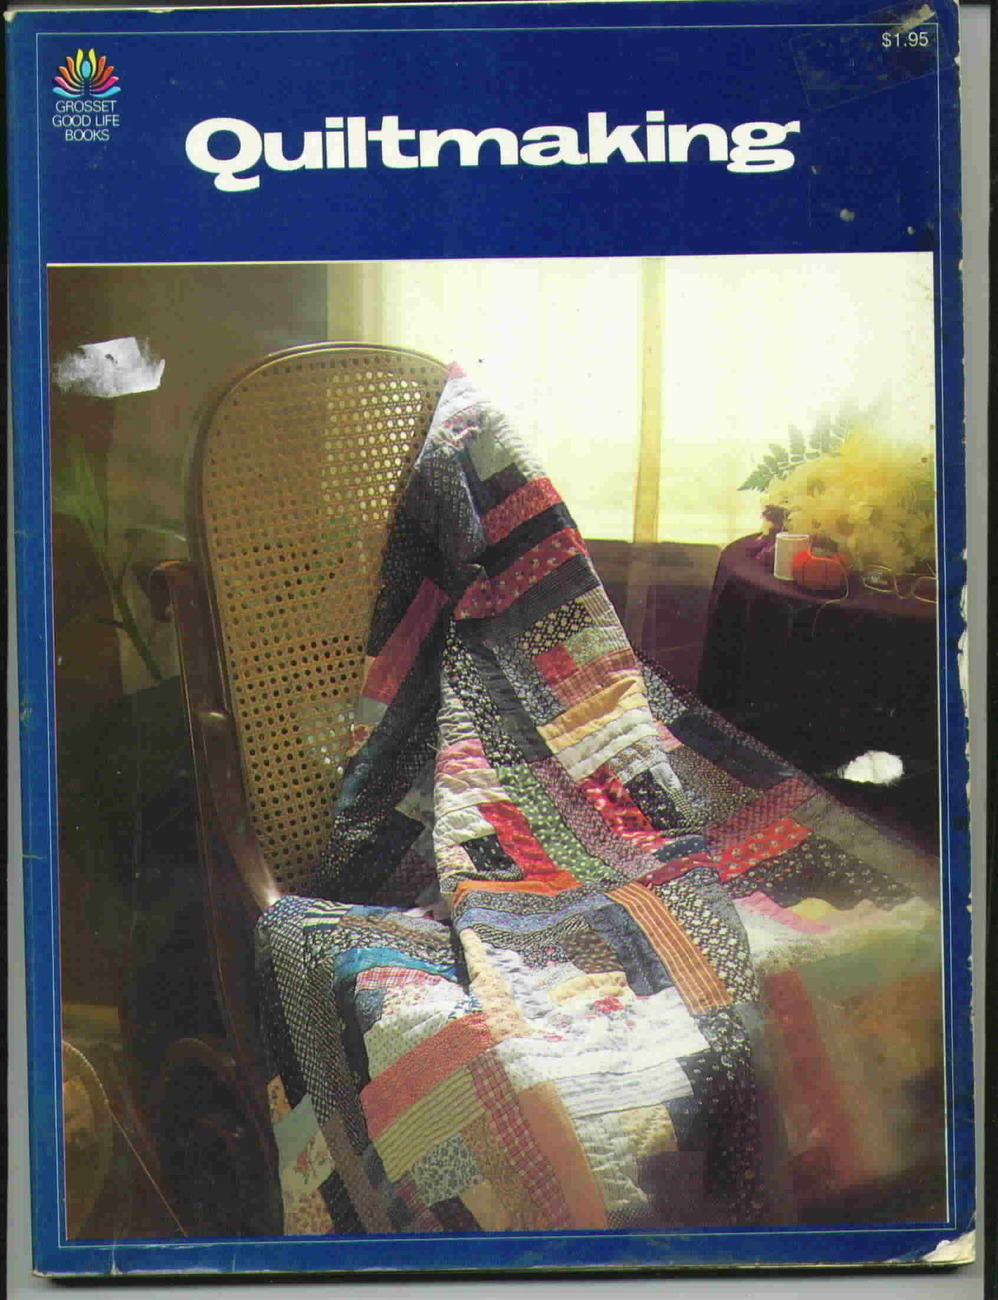 Vintage Quiltmaking Grosset Good Life Books by Catherine Fallin